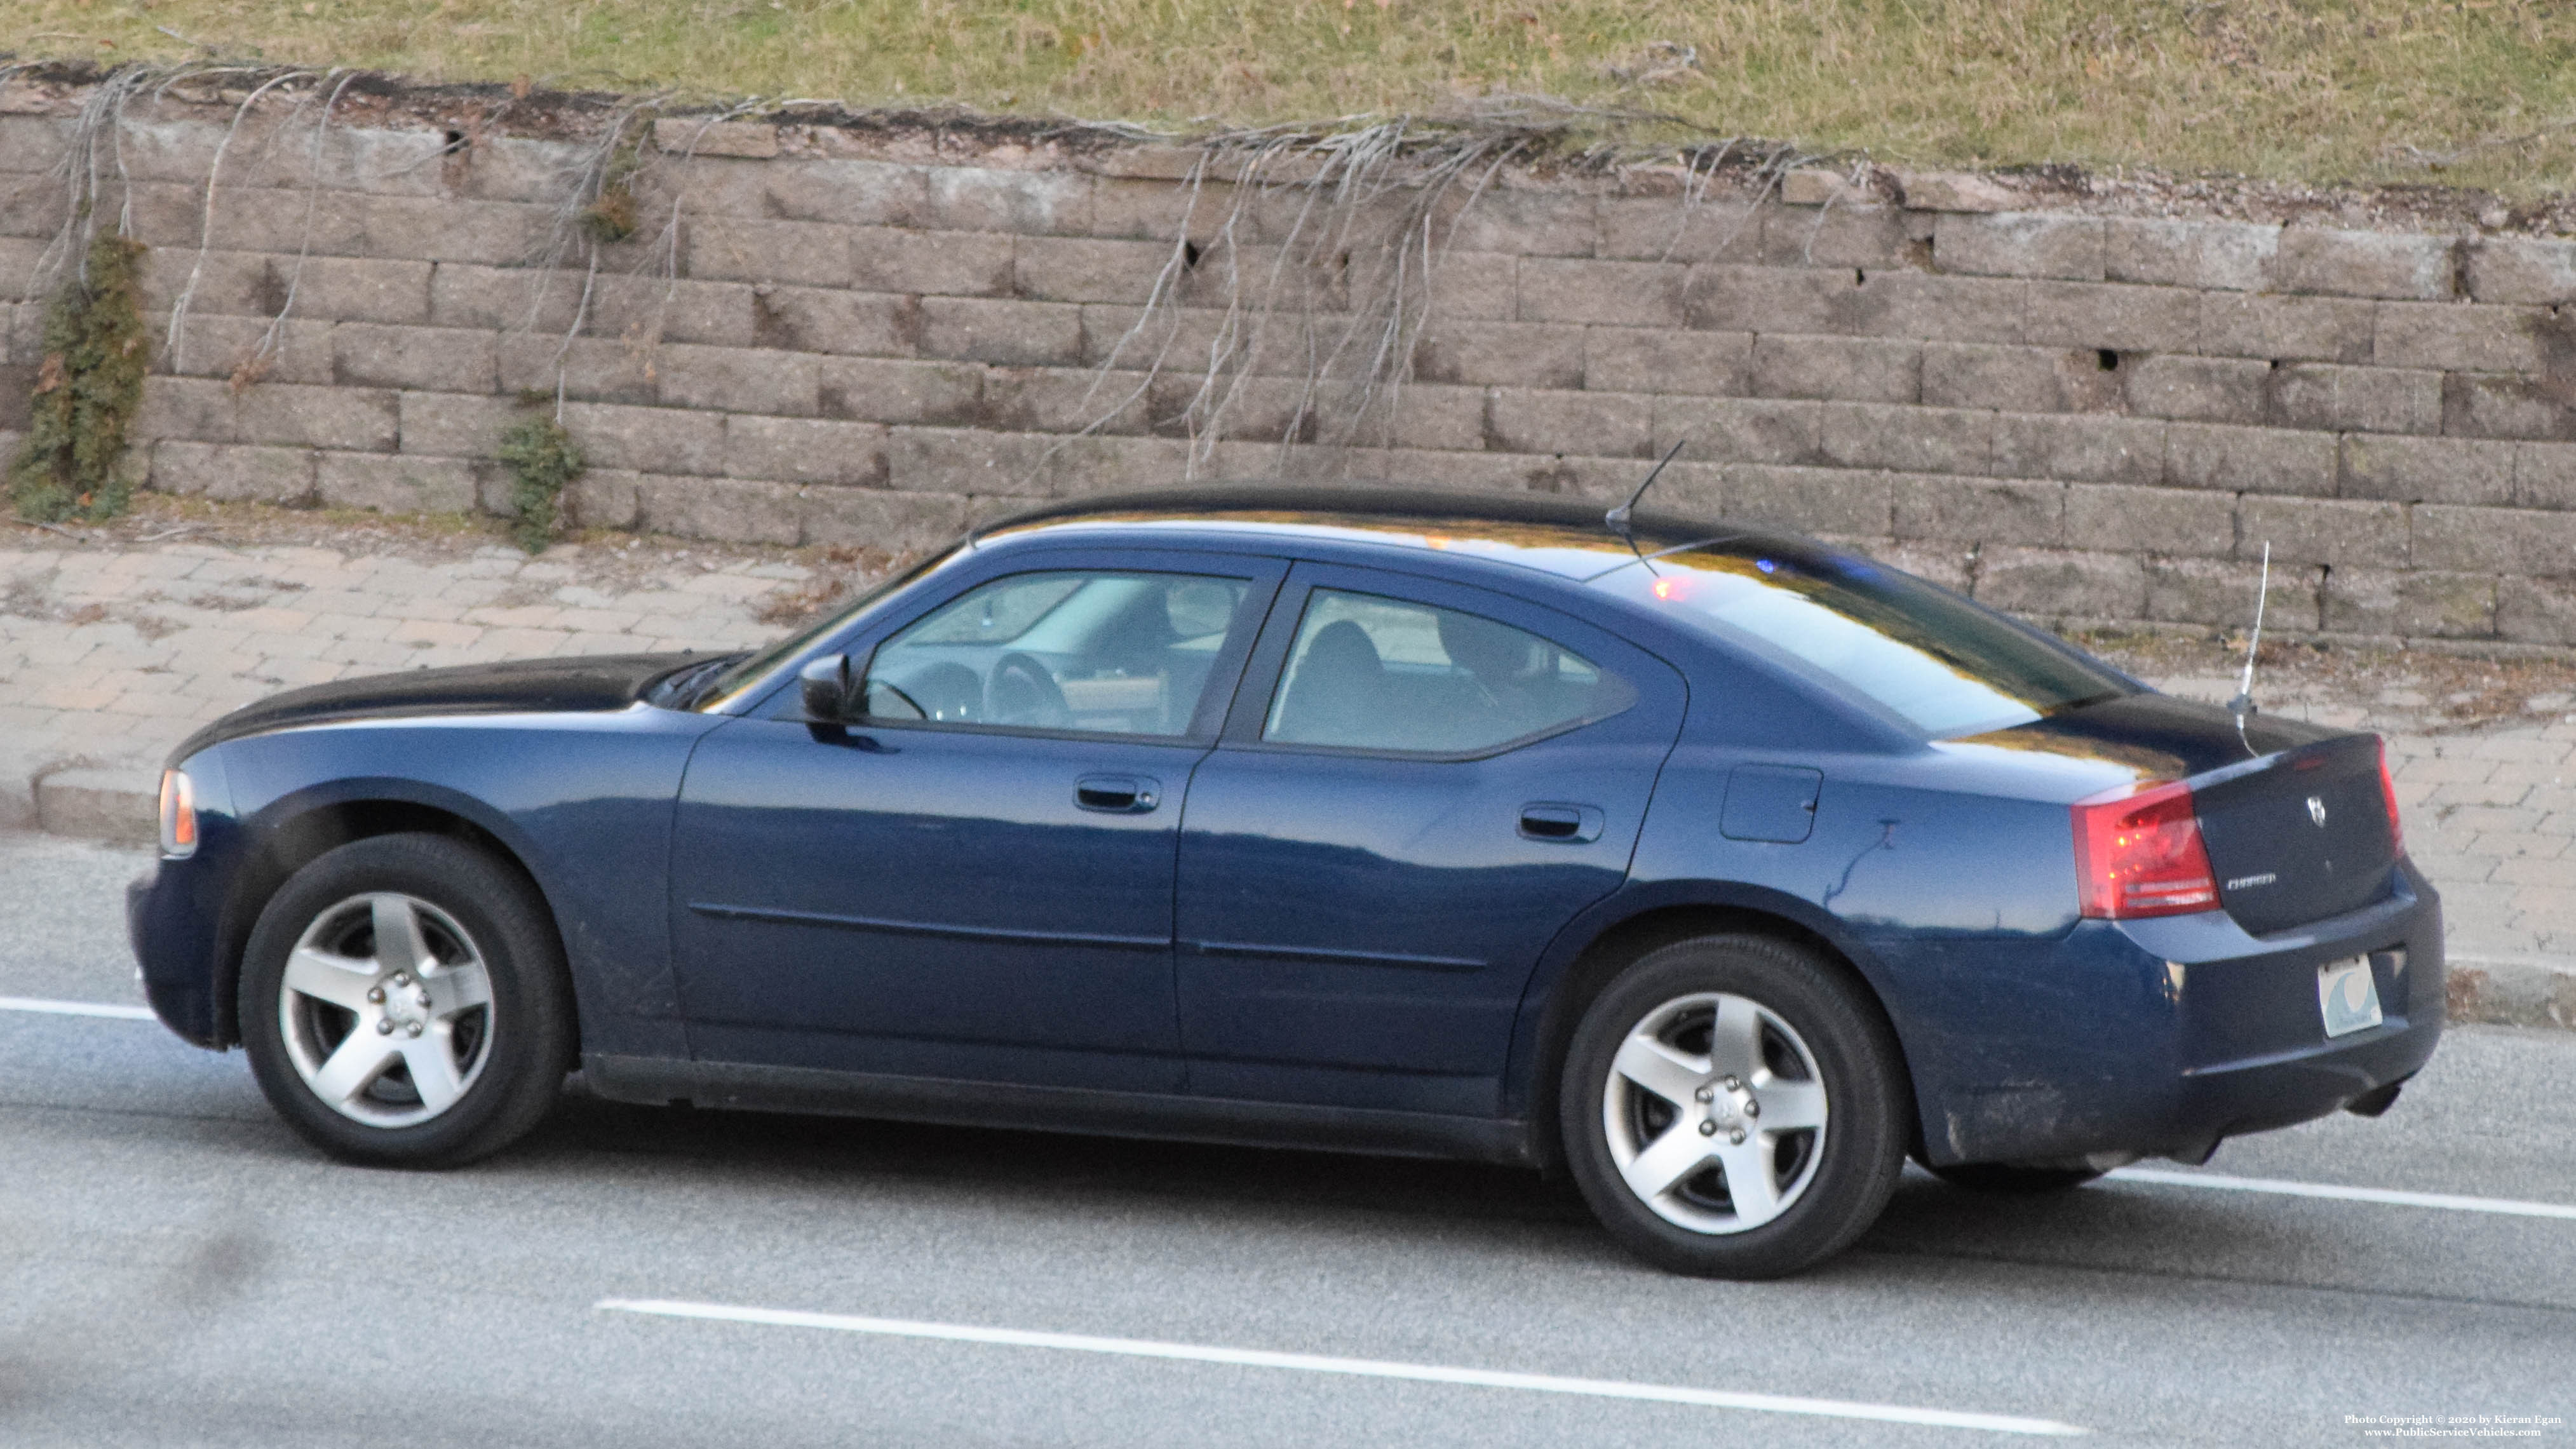 A photo  of Rhode Island State Police             Unmarked Unit, a 2006-2010 Dodge Charger             taken by Kieran Egan